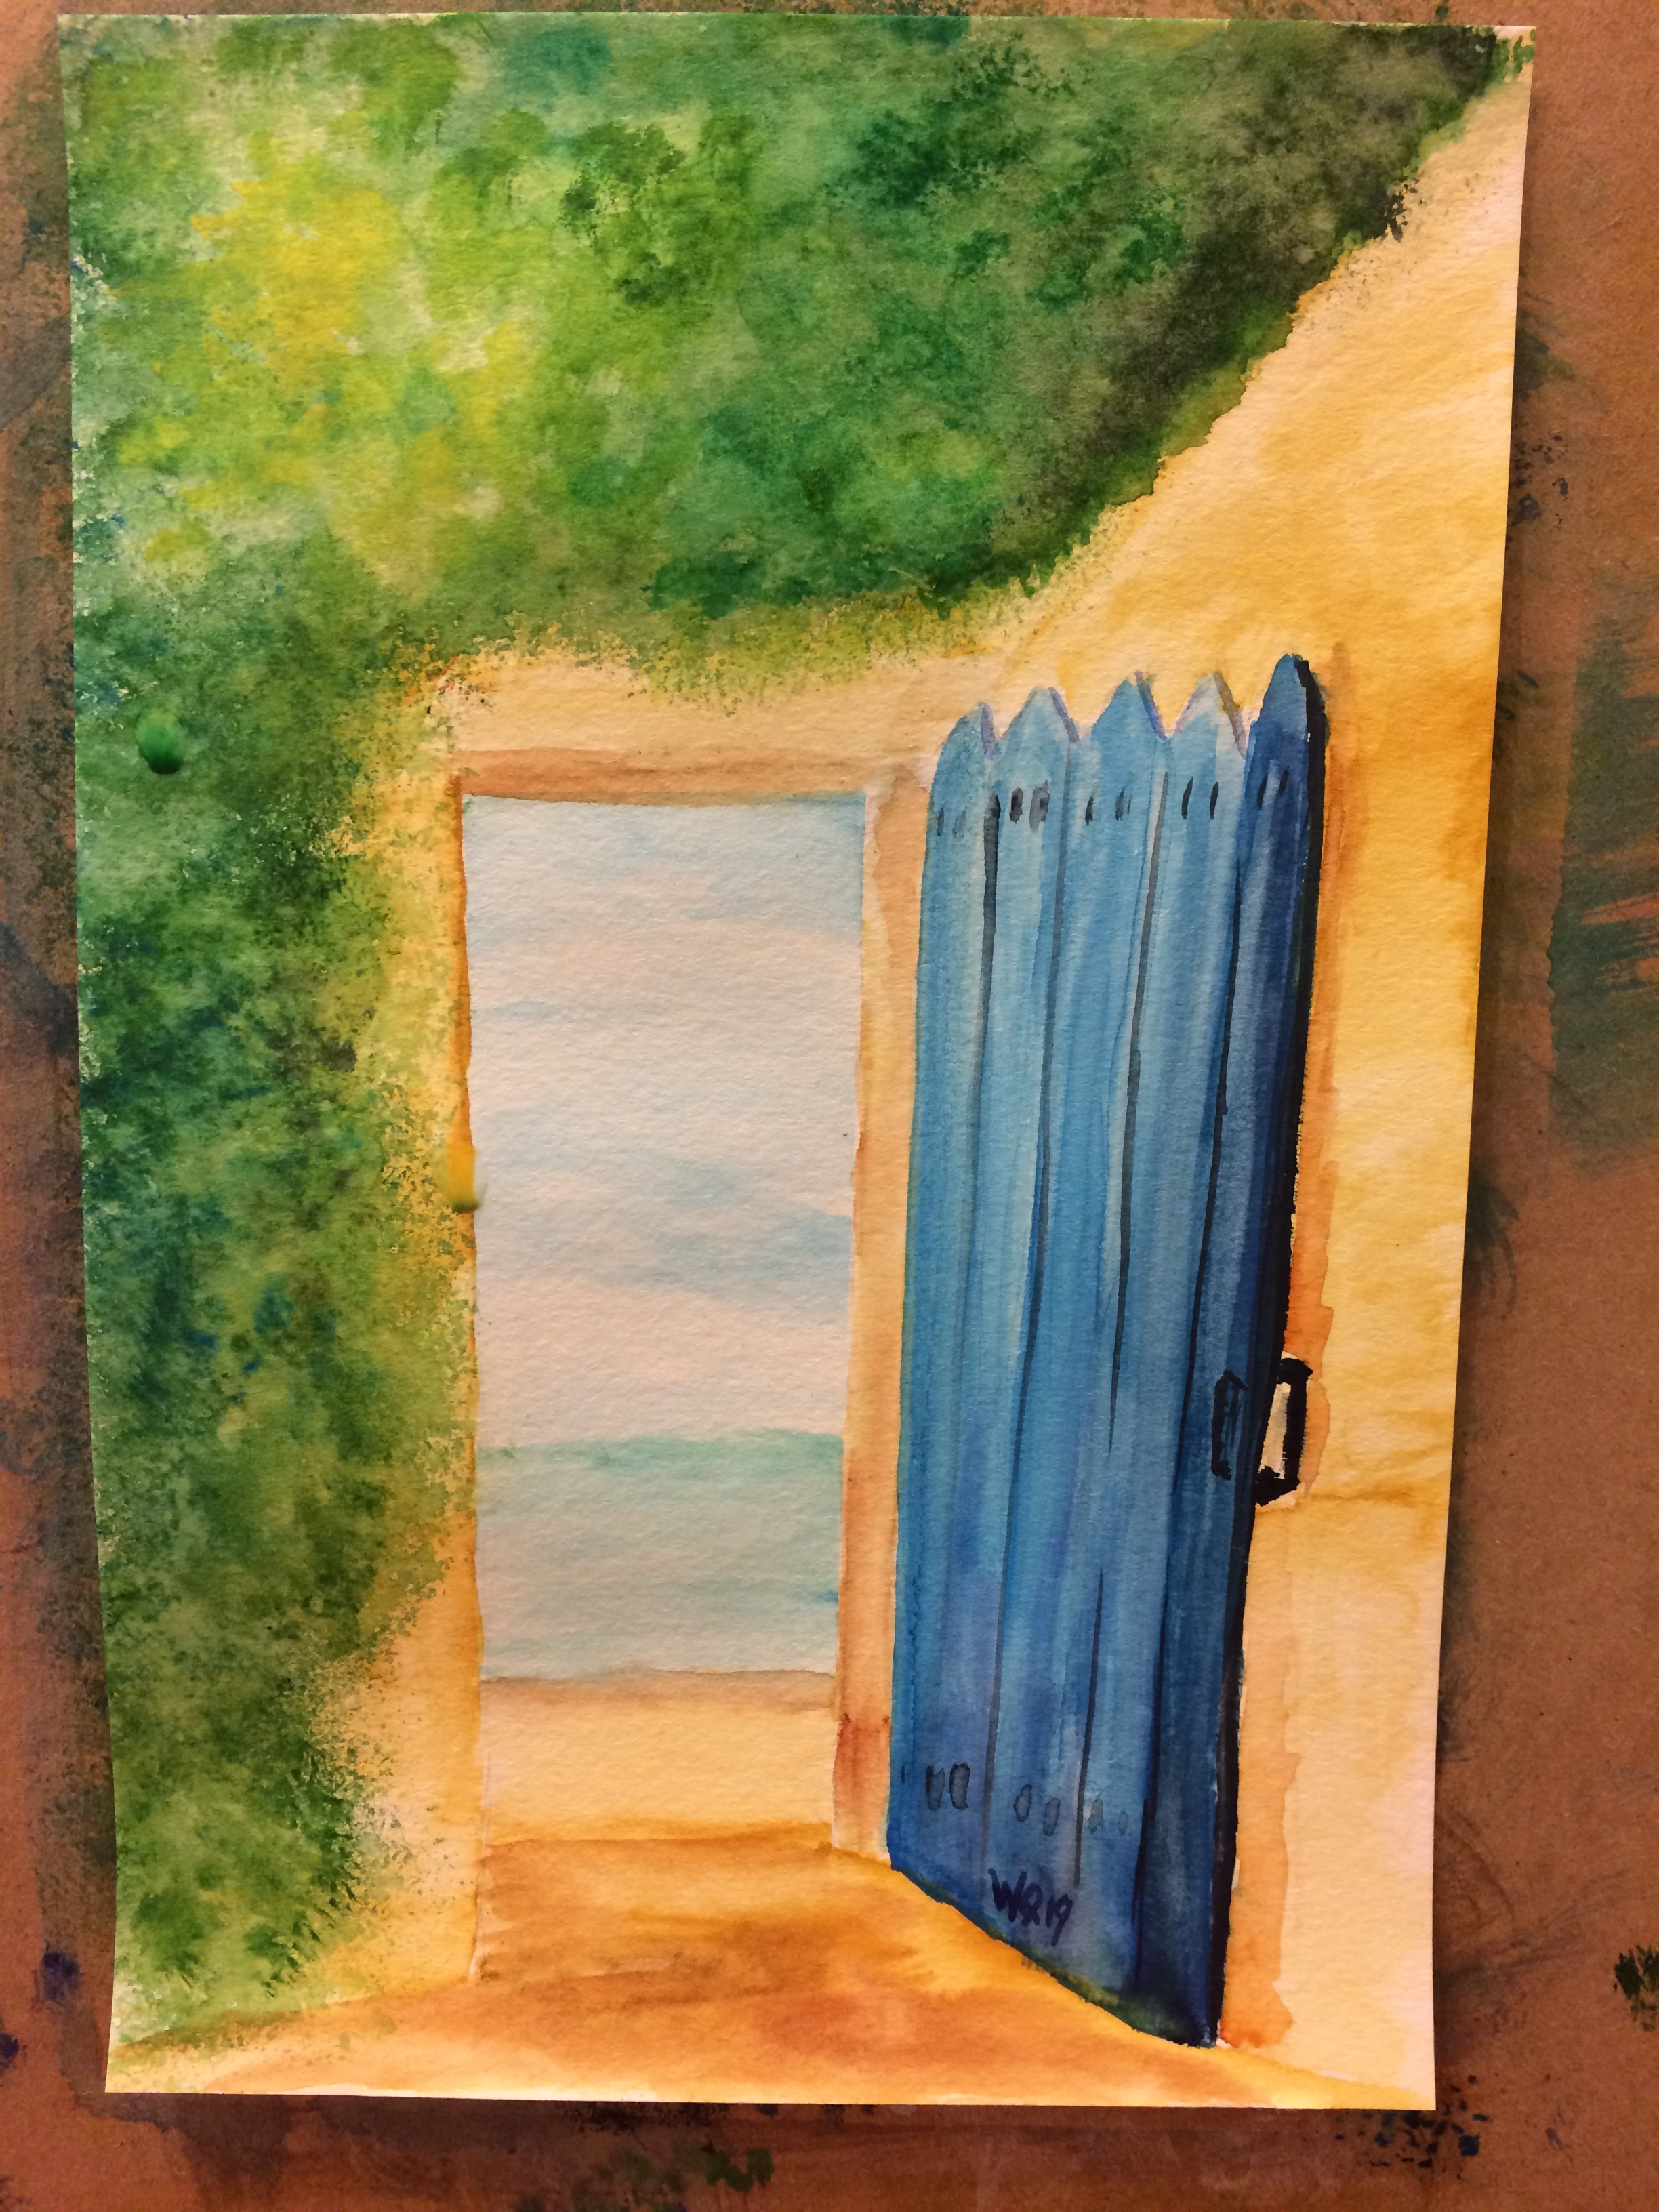 watercolour painting of a Mediterranean-looking wall and doorway, open to the ocean.